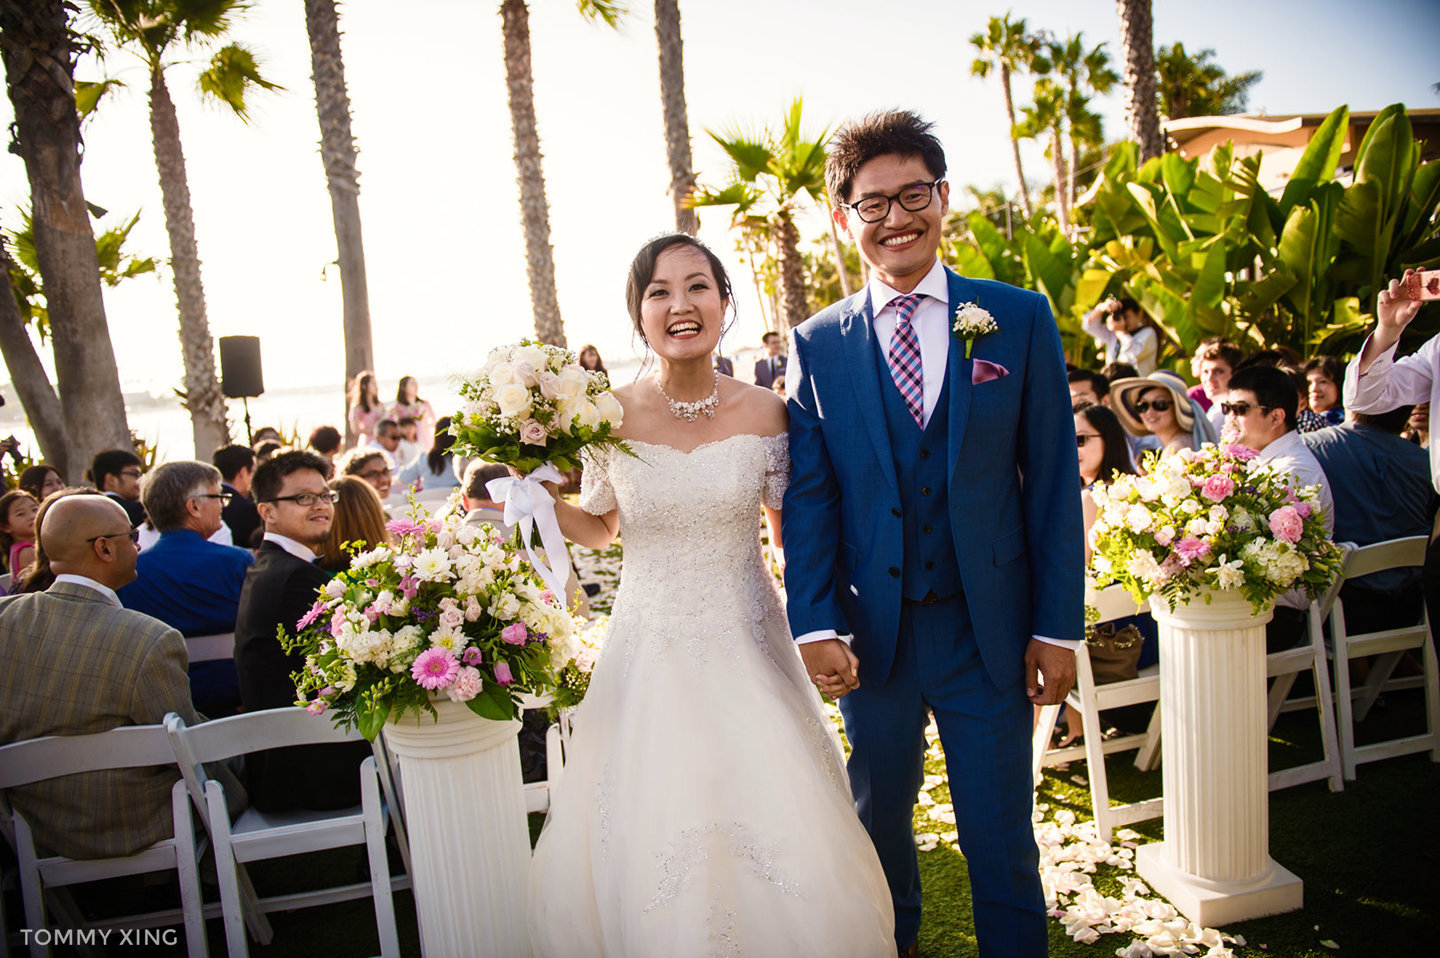 Paradise Point Resort Wedding Xiaolu & Bin San Diego 圣地亚哥婚礼摄影跟拍 Tommy Xing Photography 洛杉矶婚礼婚纱照摄影师 180.jpg